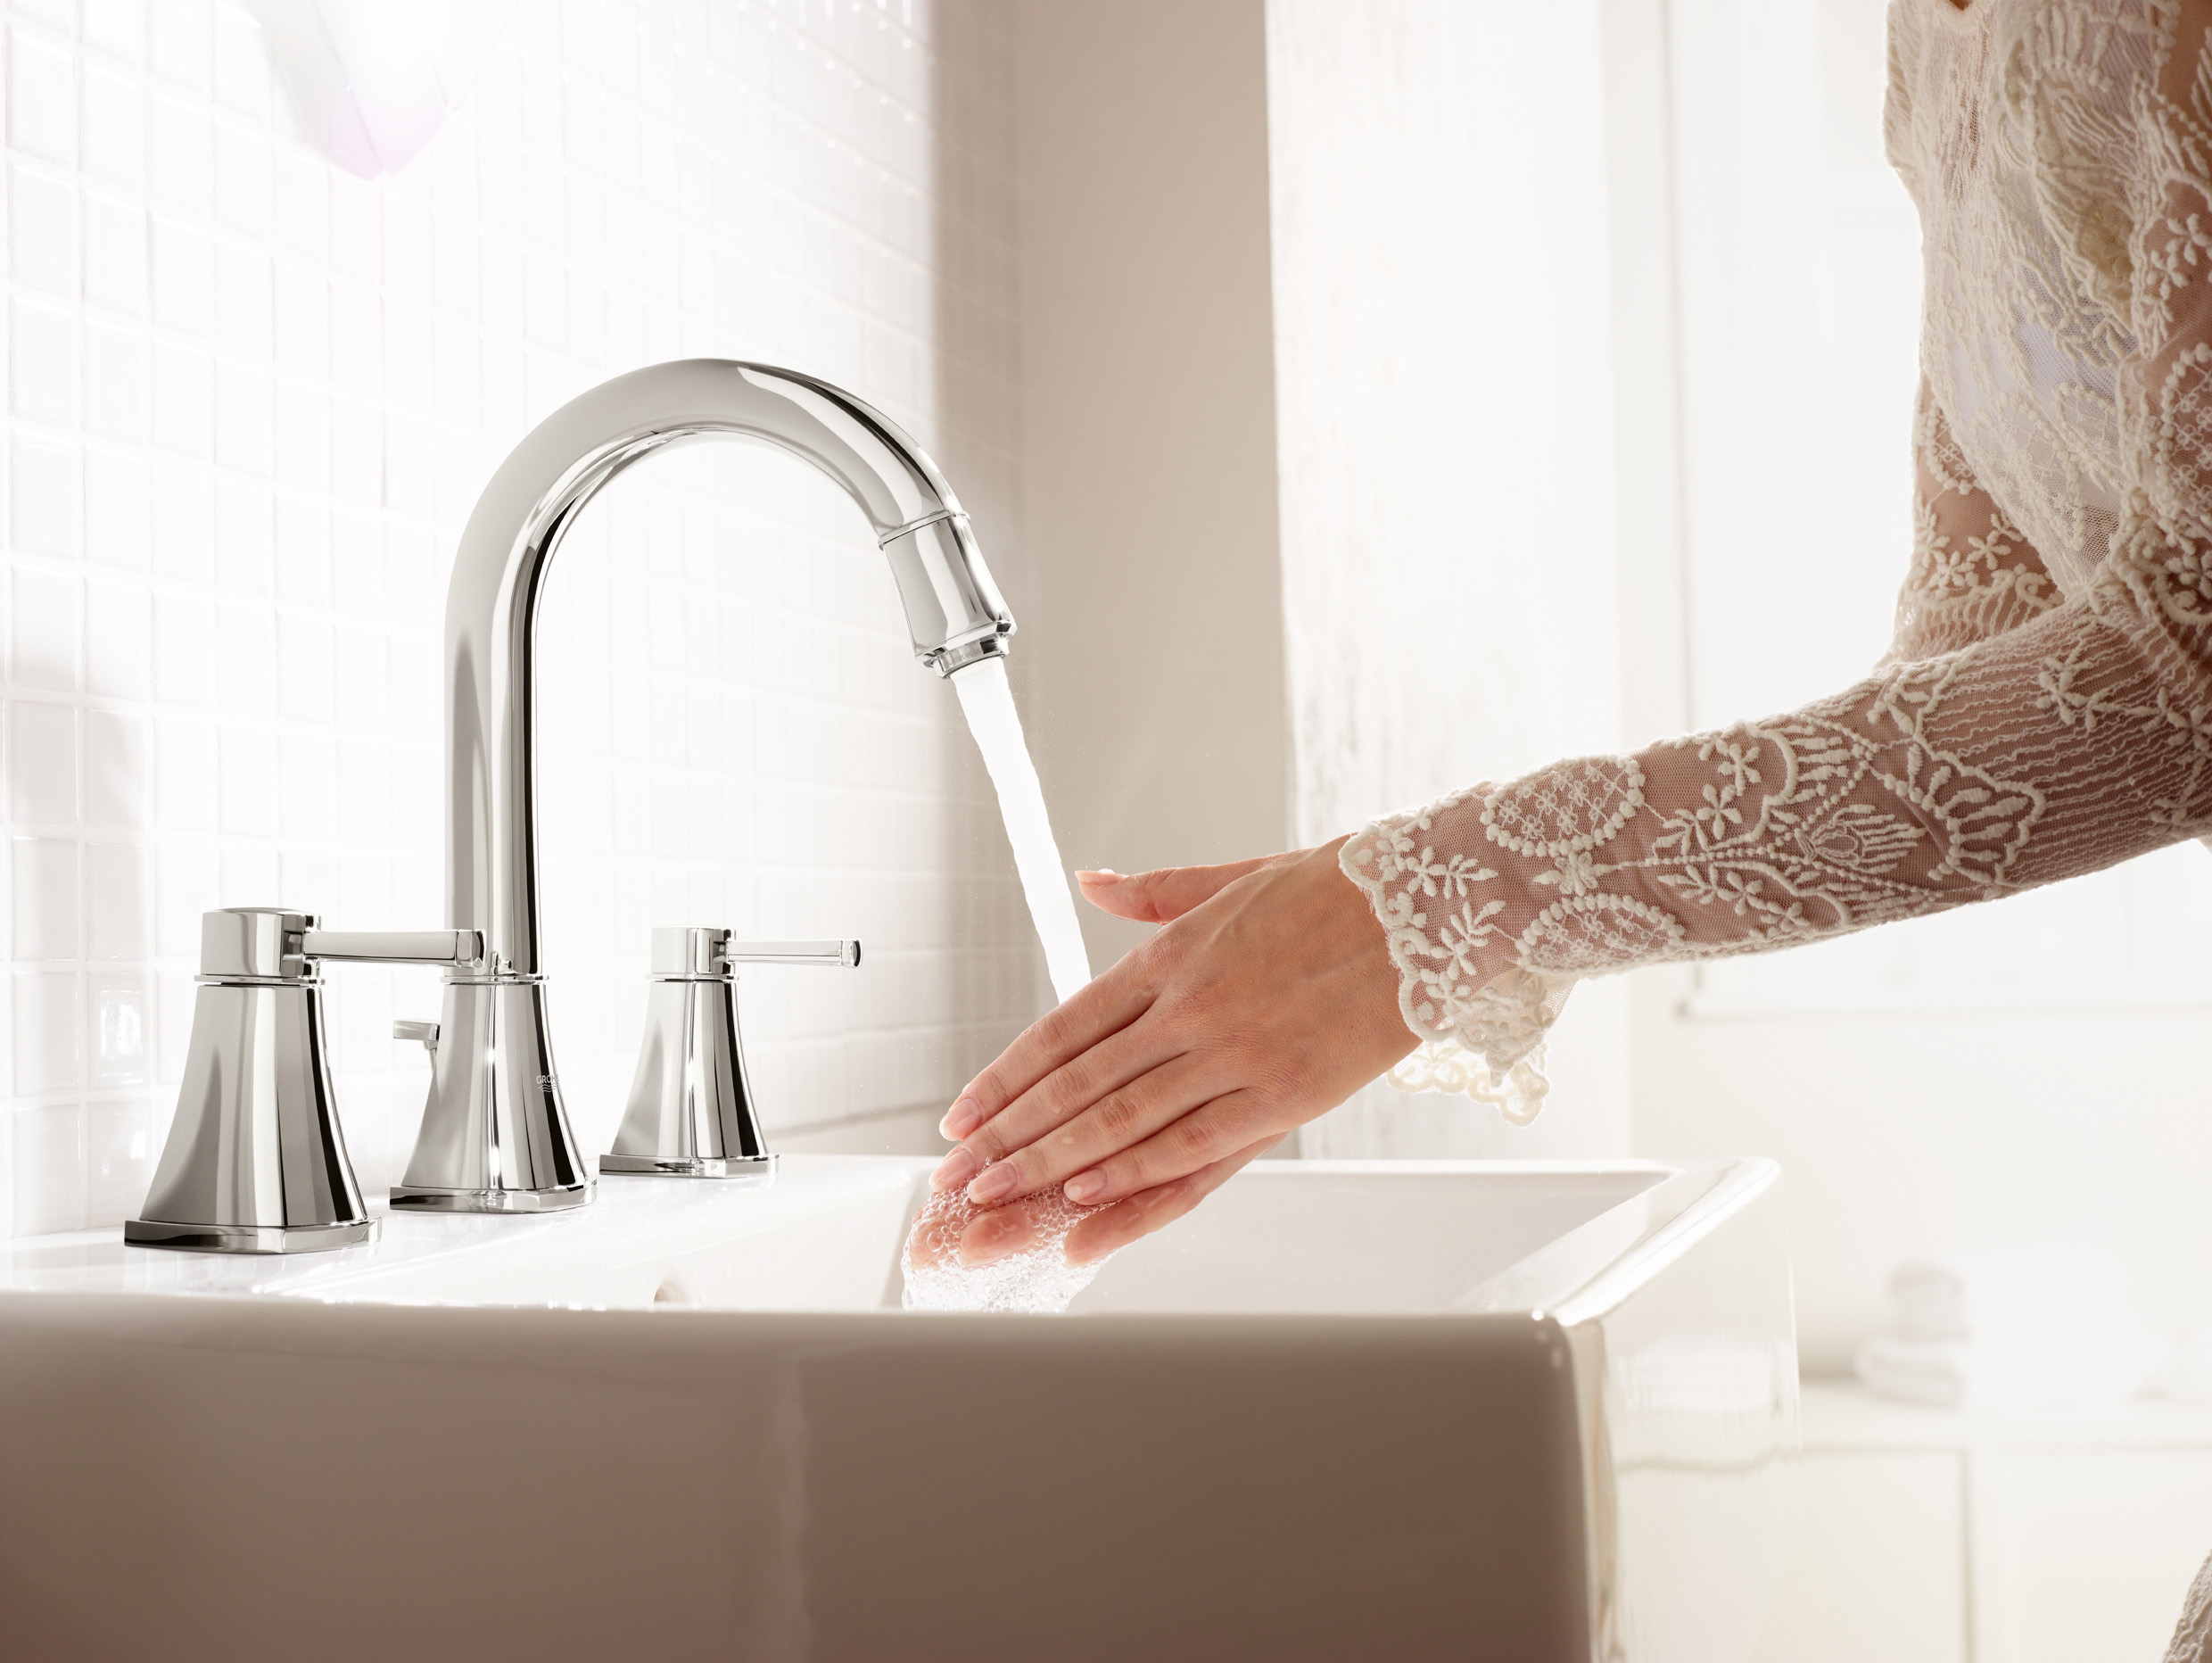 Splashing Water And Unsightly Design Combinations Of Washbasin And Faucet  Are A Thing Of The Past (faucet Line: GROHE Grandera).